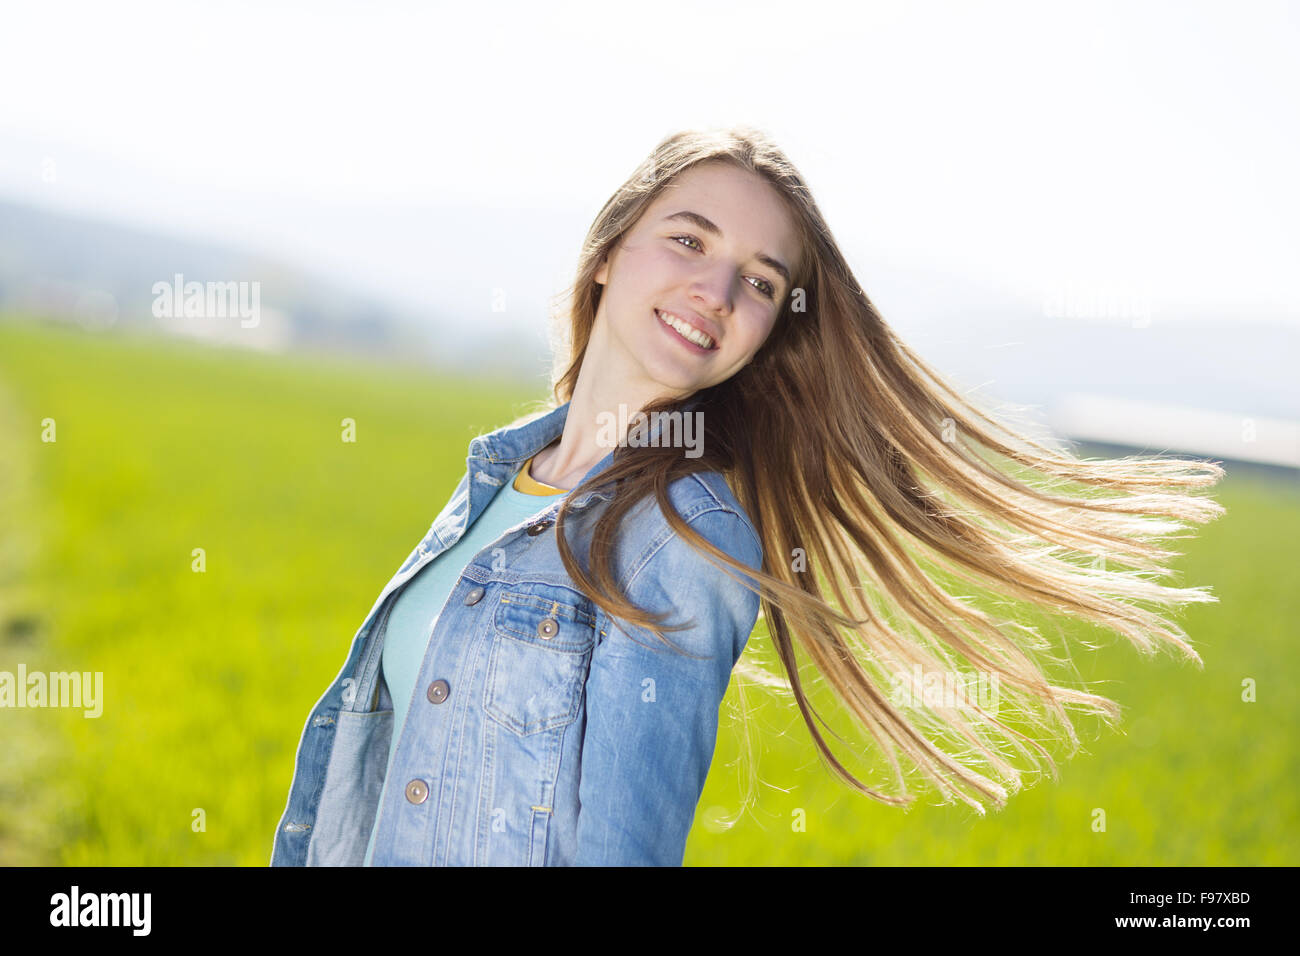 63cbf25dd2 Happy young girl in blue jeans jacket enjoying free time in green field -  Stock Image